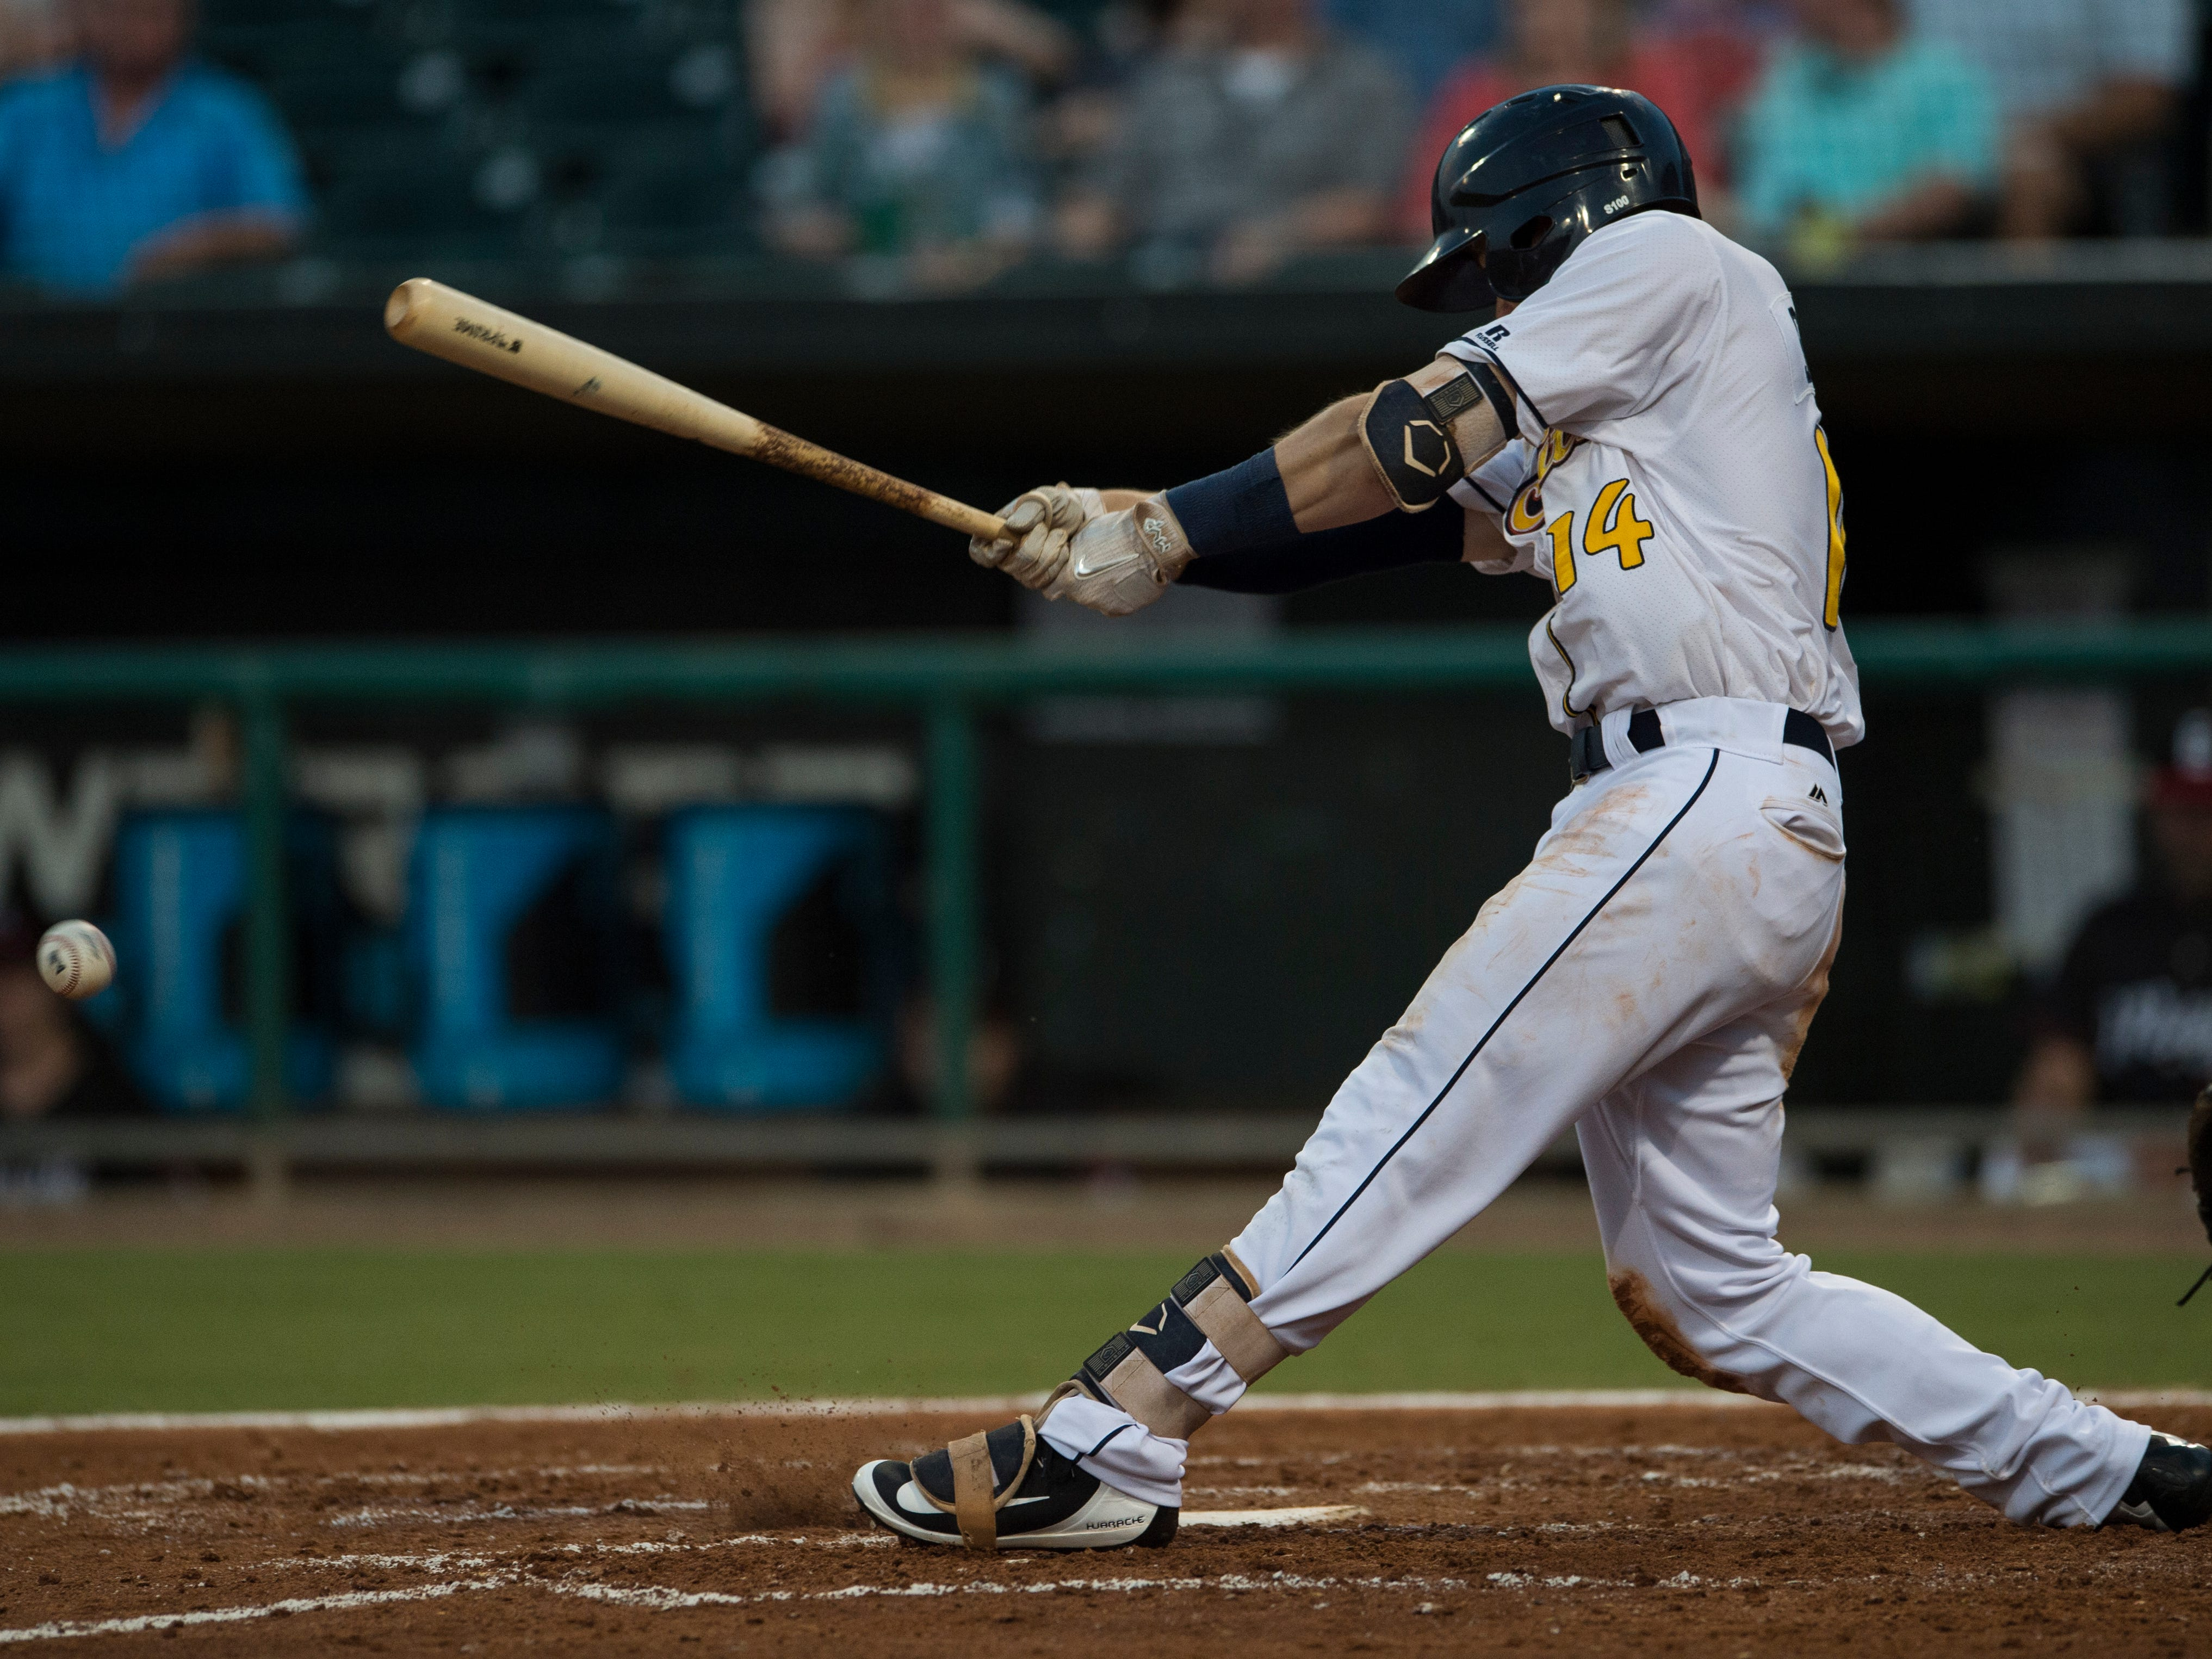 Biscuits' season ends, Generals advance to Southern League championship series